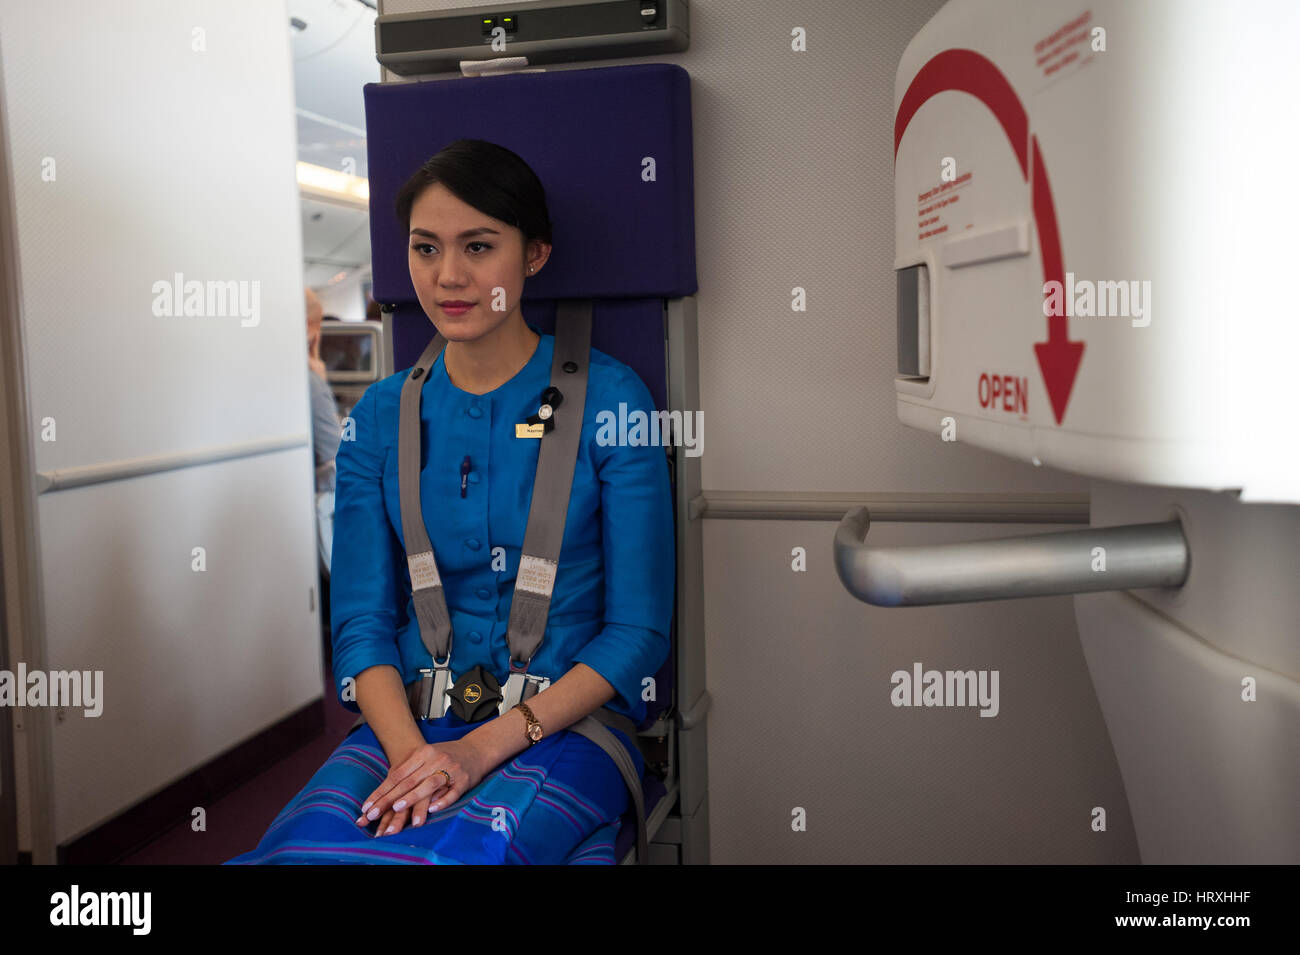 25.01.2017, Singapore, Republic of Singapore, Asia - A Thai Airways flight attendant on a flight from Singapore - Stock Image